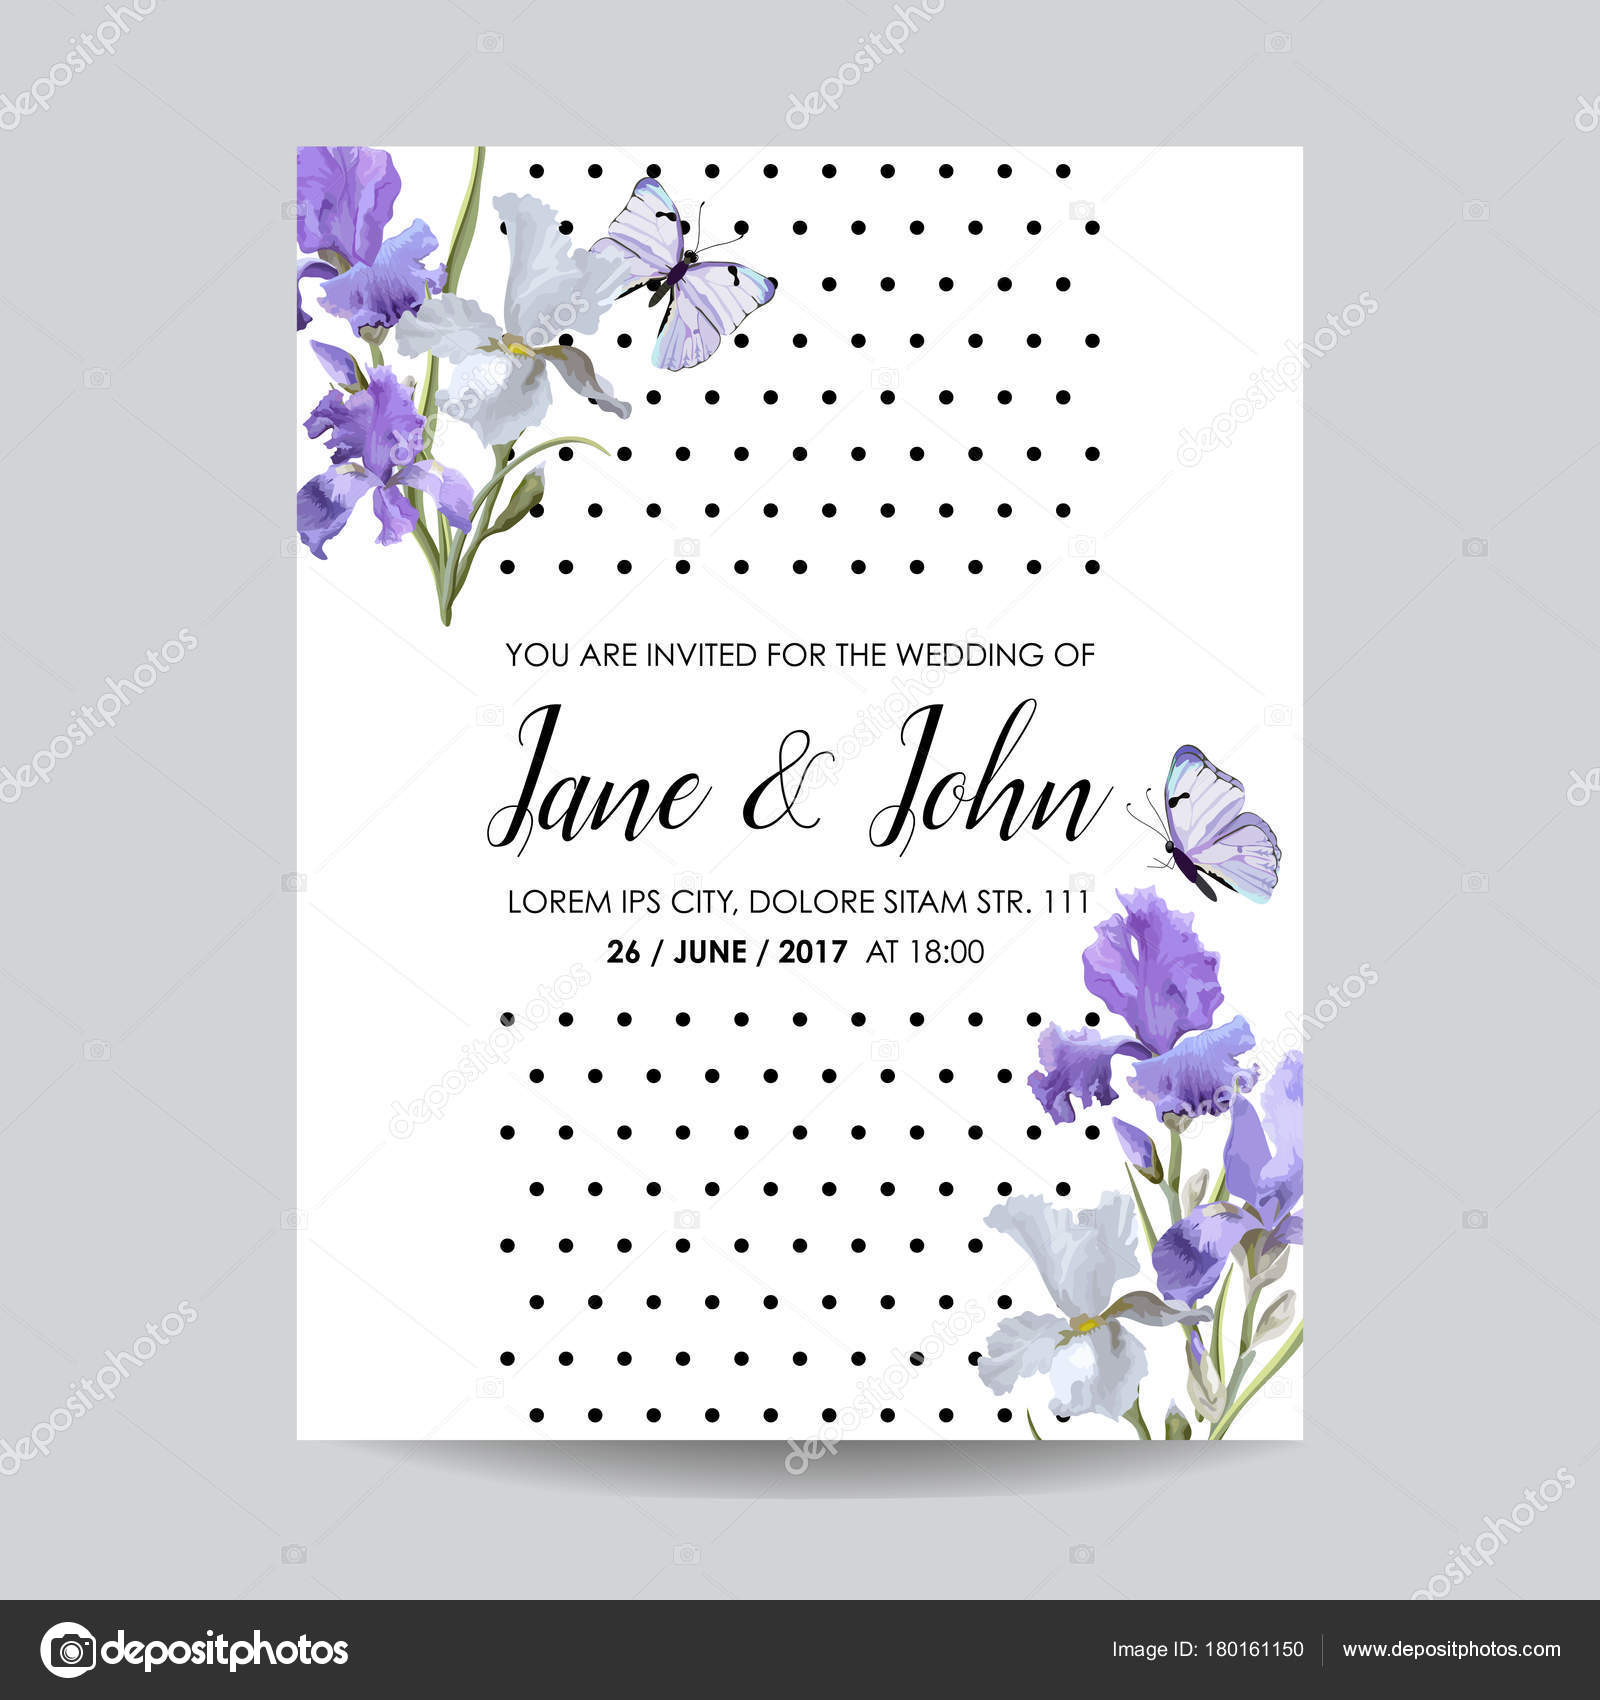 Save the date card with iris flowers and butterflies floral wedding save the date card with iris flowers and butterflies floral wedding invitation template botanical izmirmasajfo